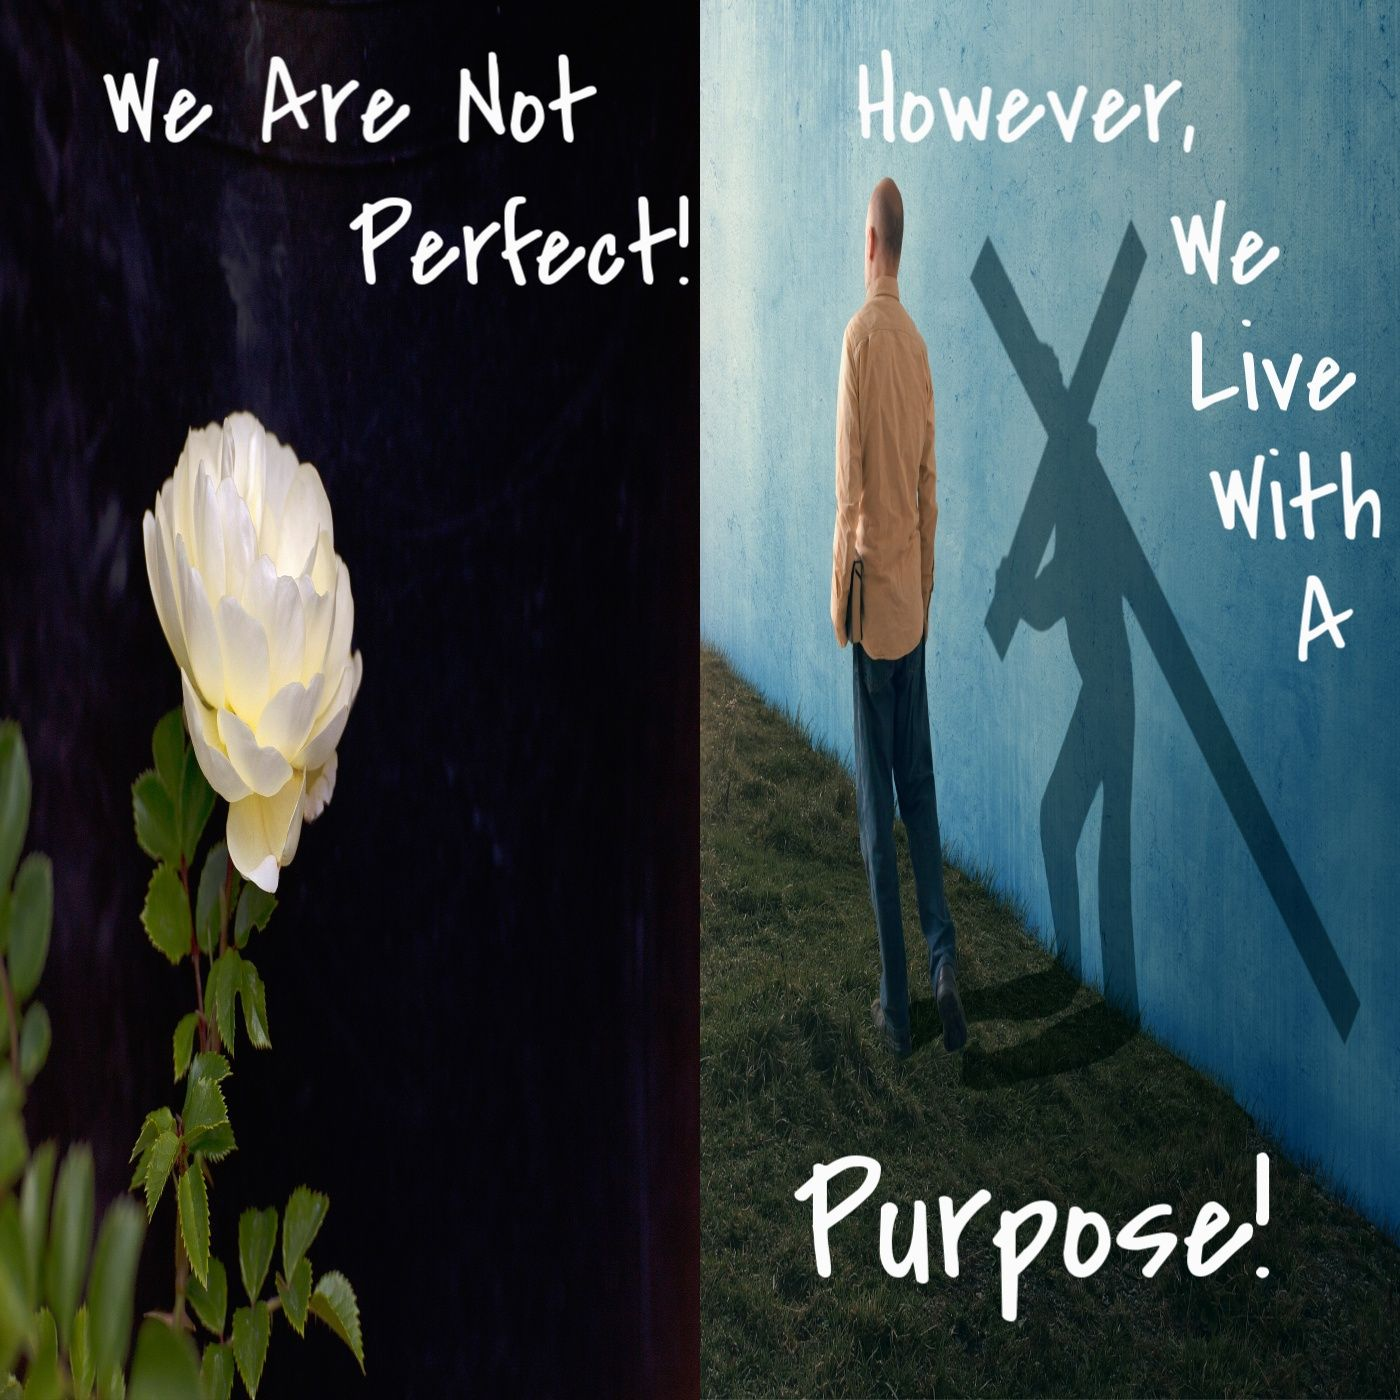 We Are Not Perfect However We Live With A Purpose Part 2